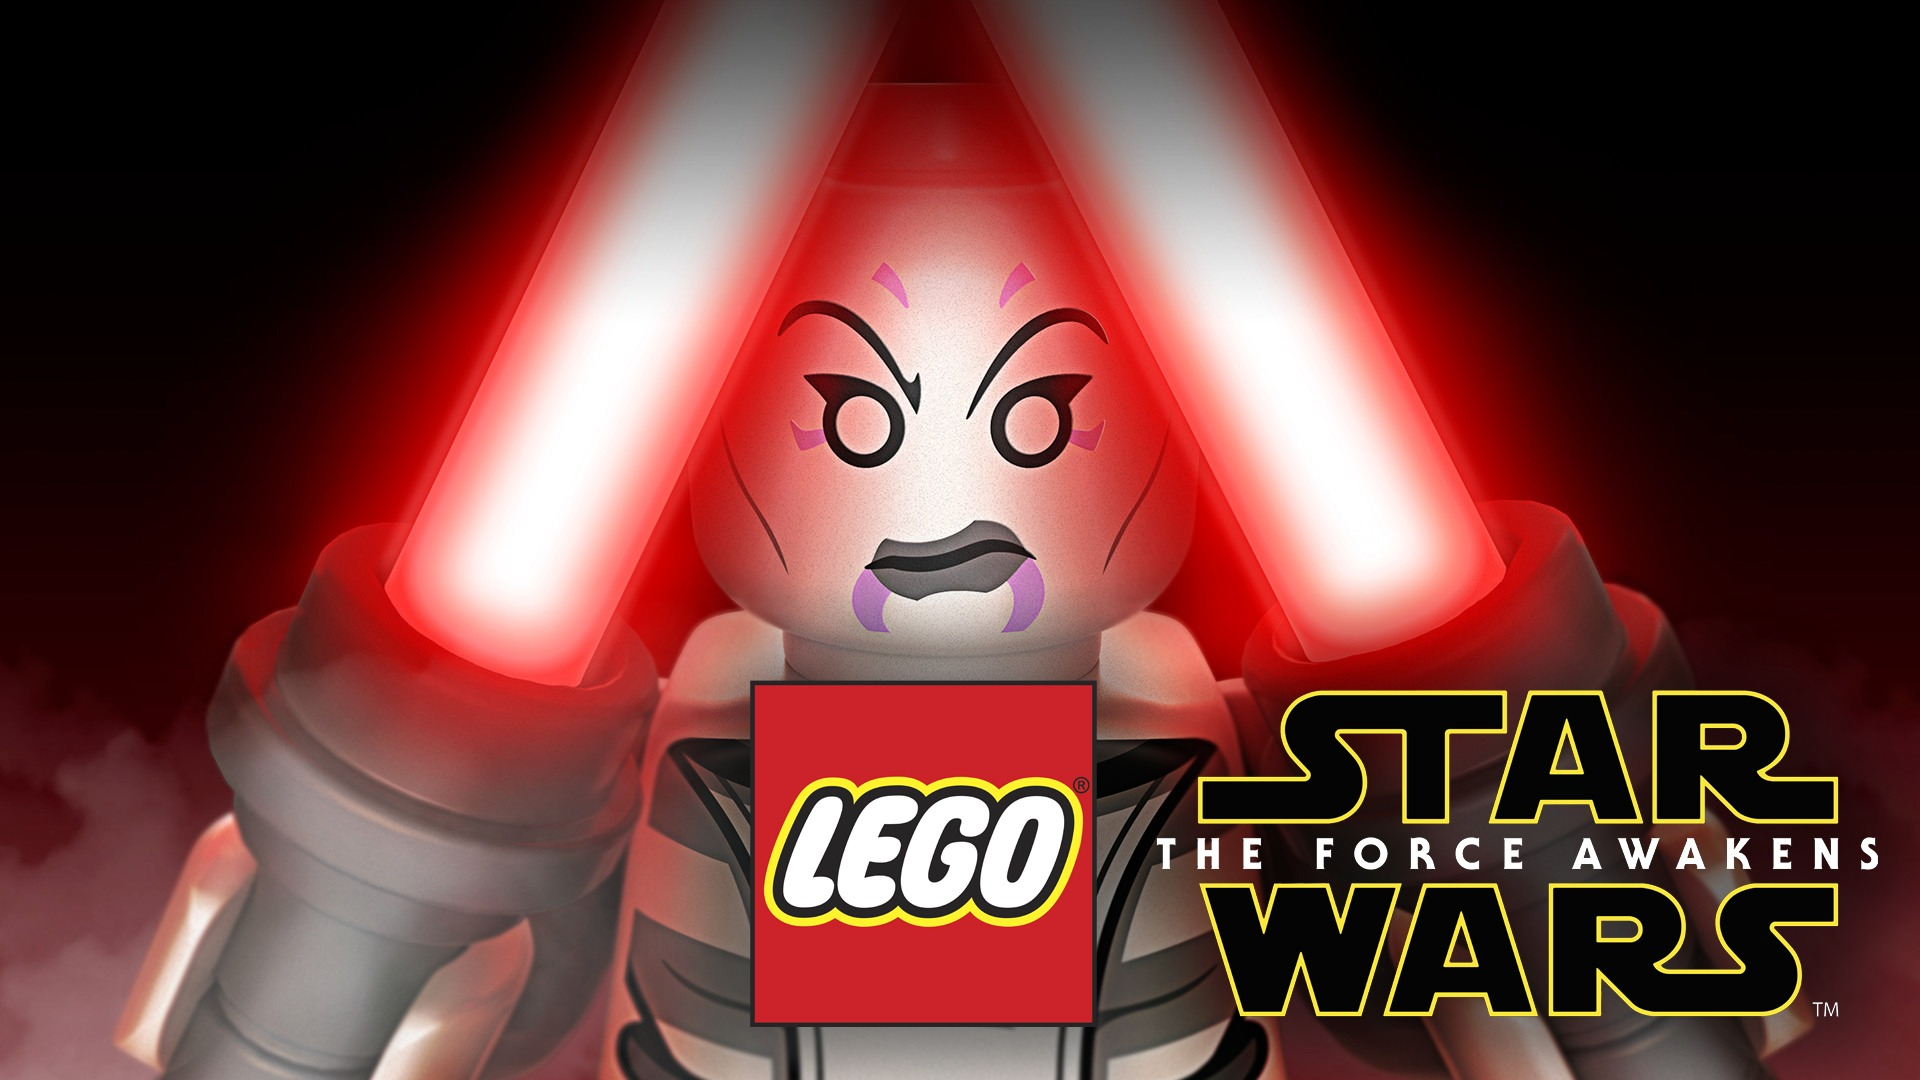 Lego Star Wars The Force Awakens The Clone Wars Character